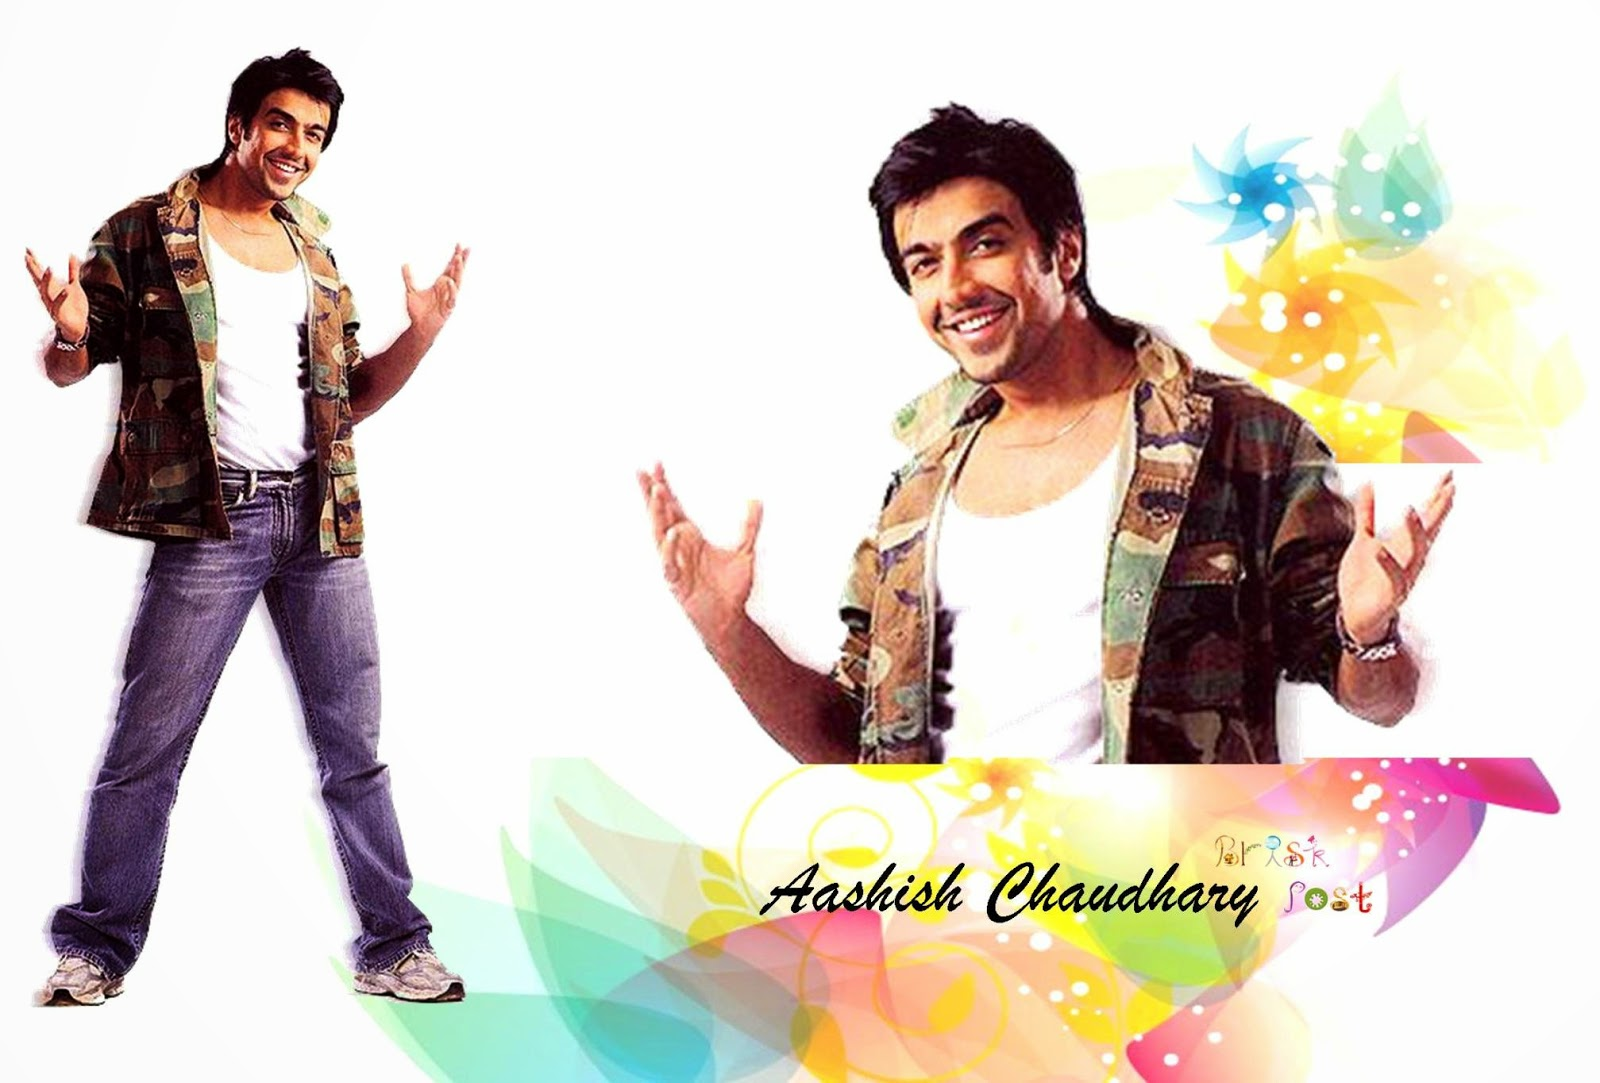 Aashish Chaudhary Wallpaper